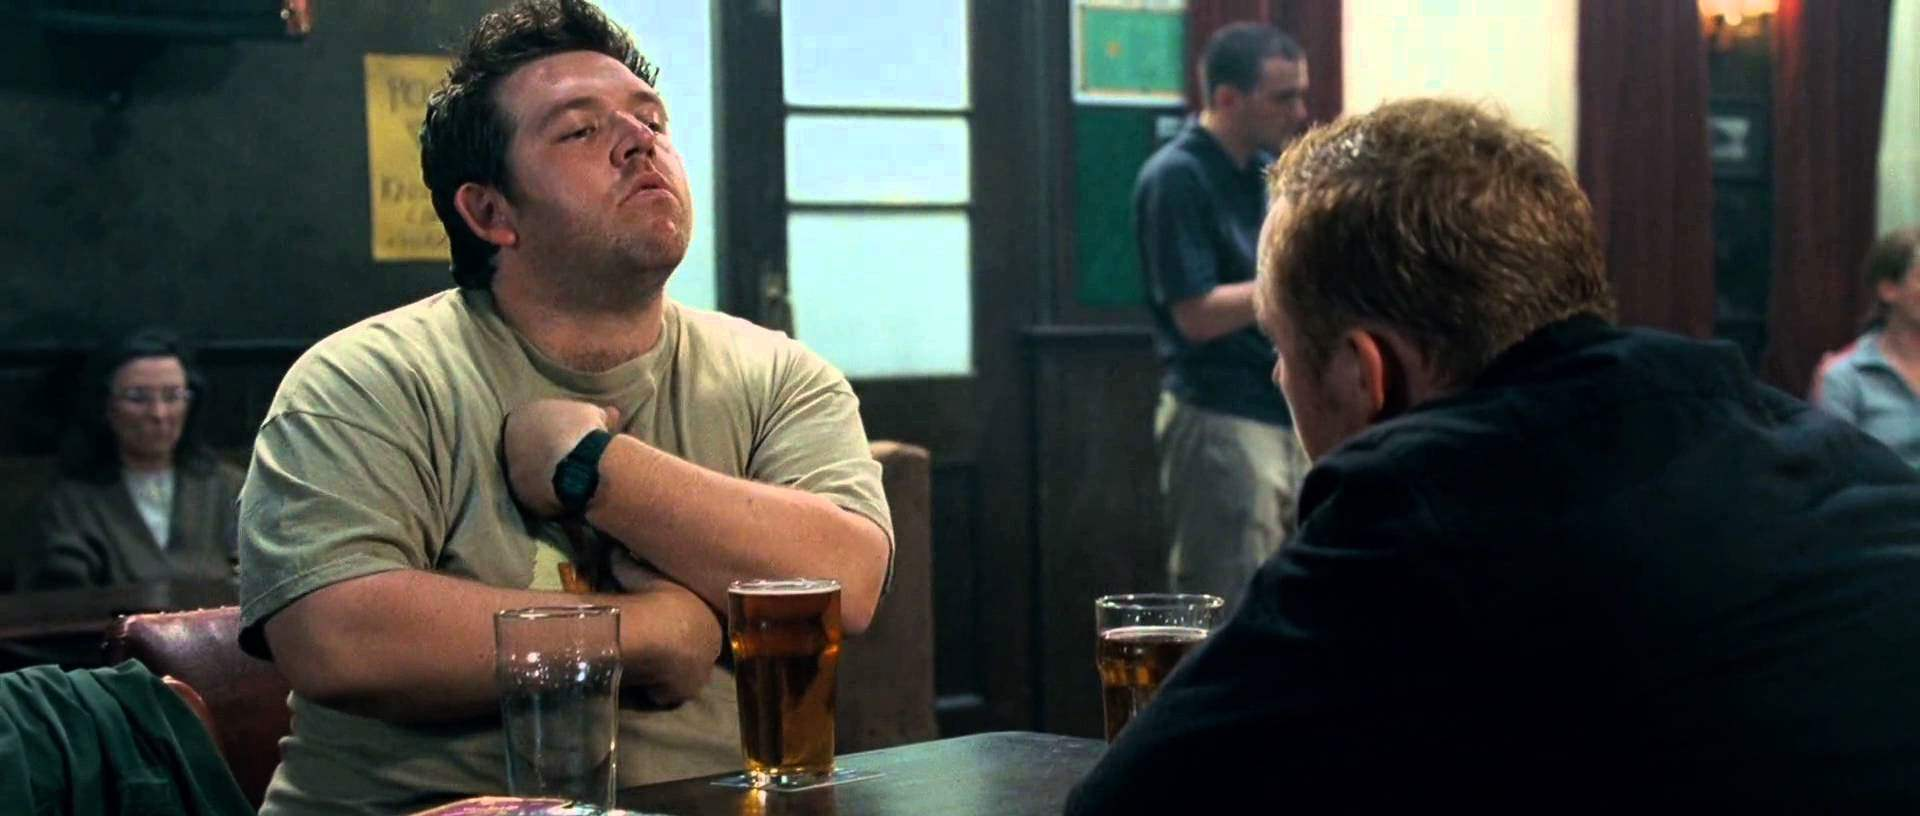 Nick Frost as Ed in Shaun of the Dead